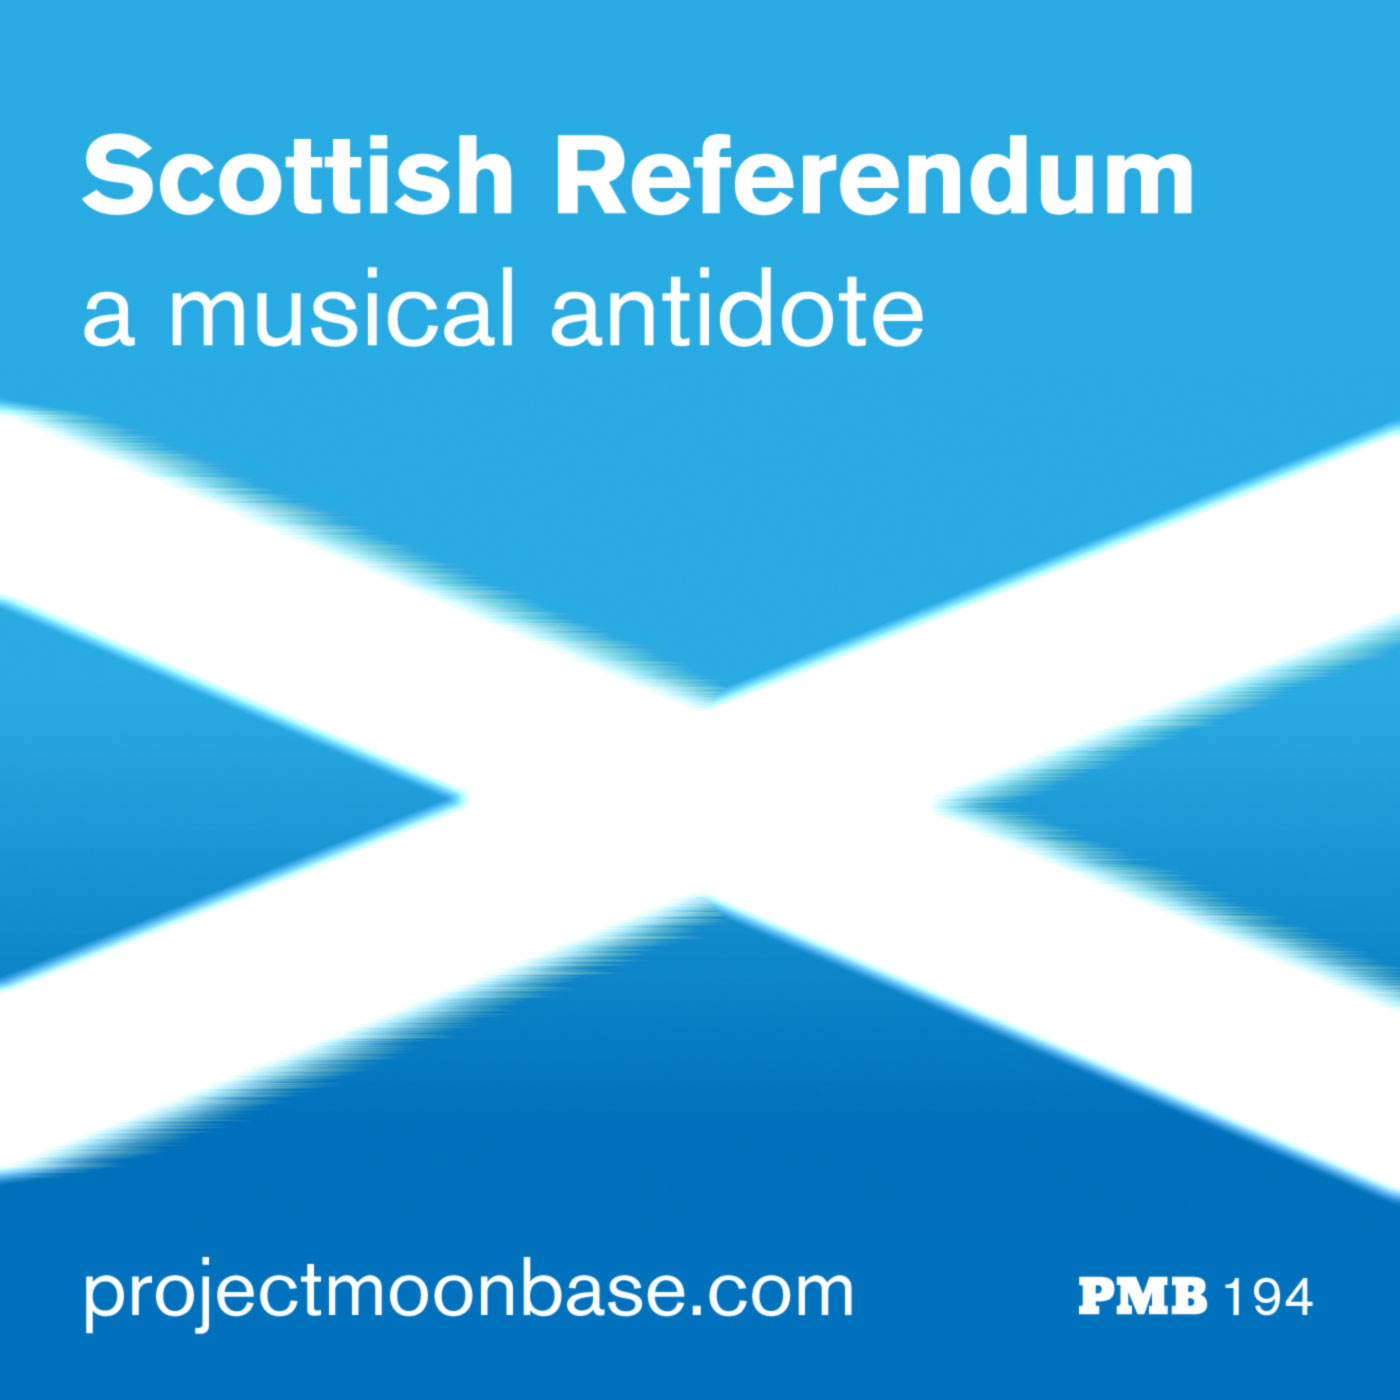 PMB194: The Scottish Referendum – A Musical Antidote